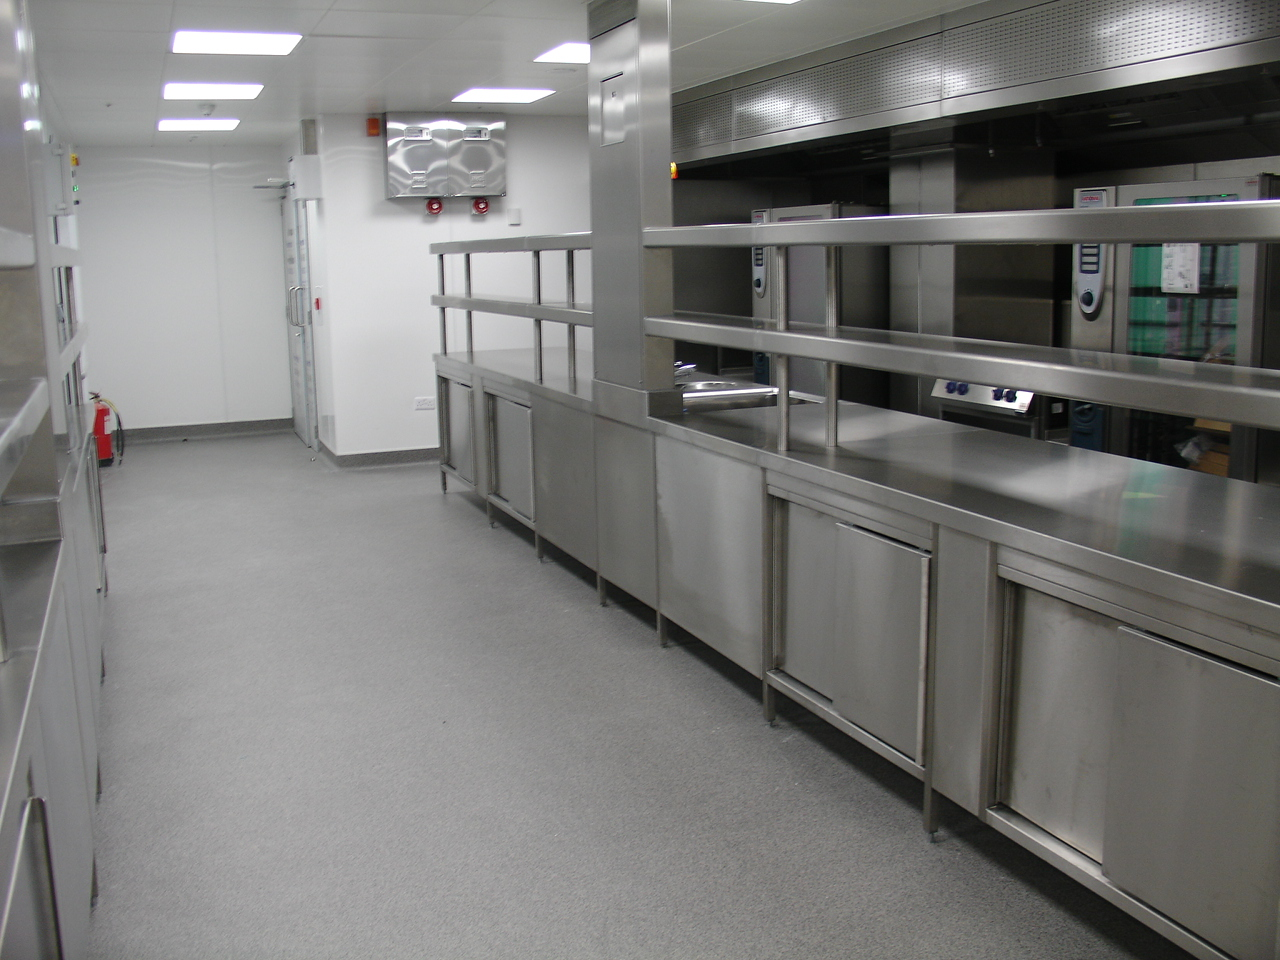 commercial kitchen flooring stonewall dark chocolate sea salt caramel sauce a quick guide to choosing floors floortech 3 key considerations